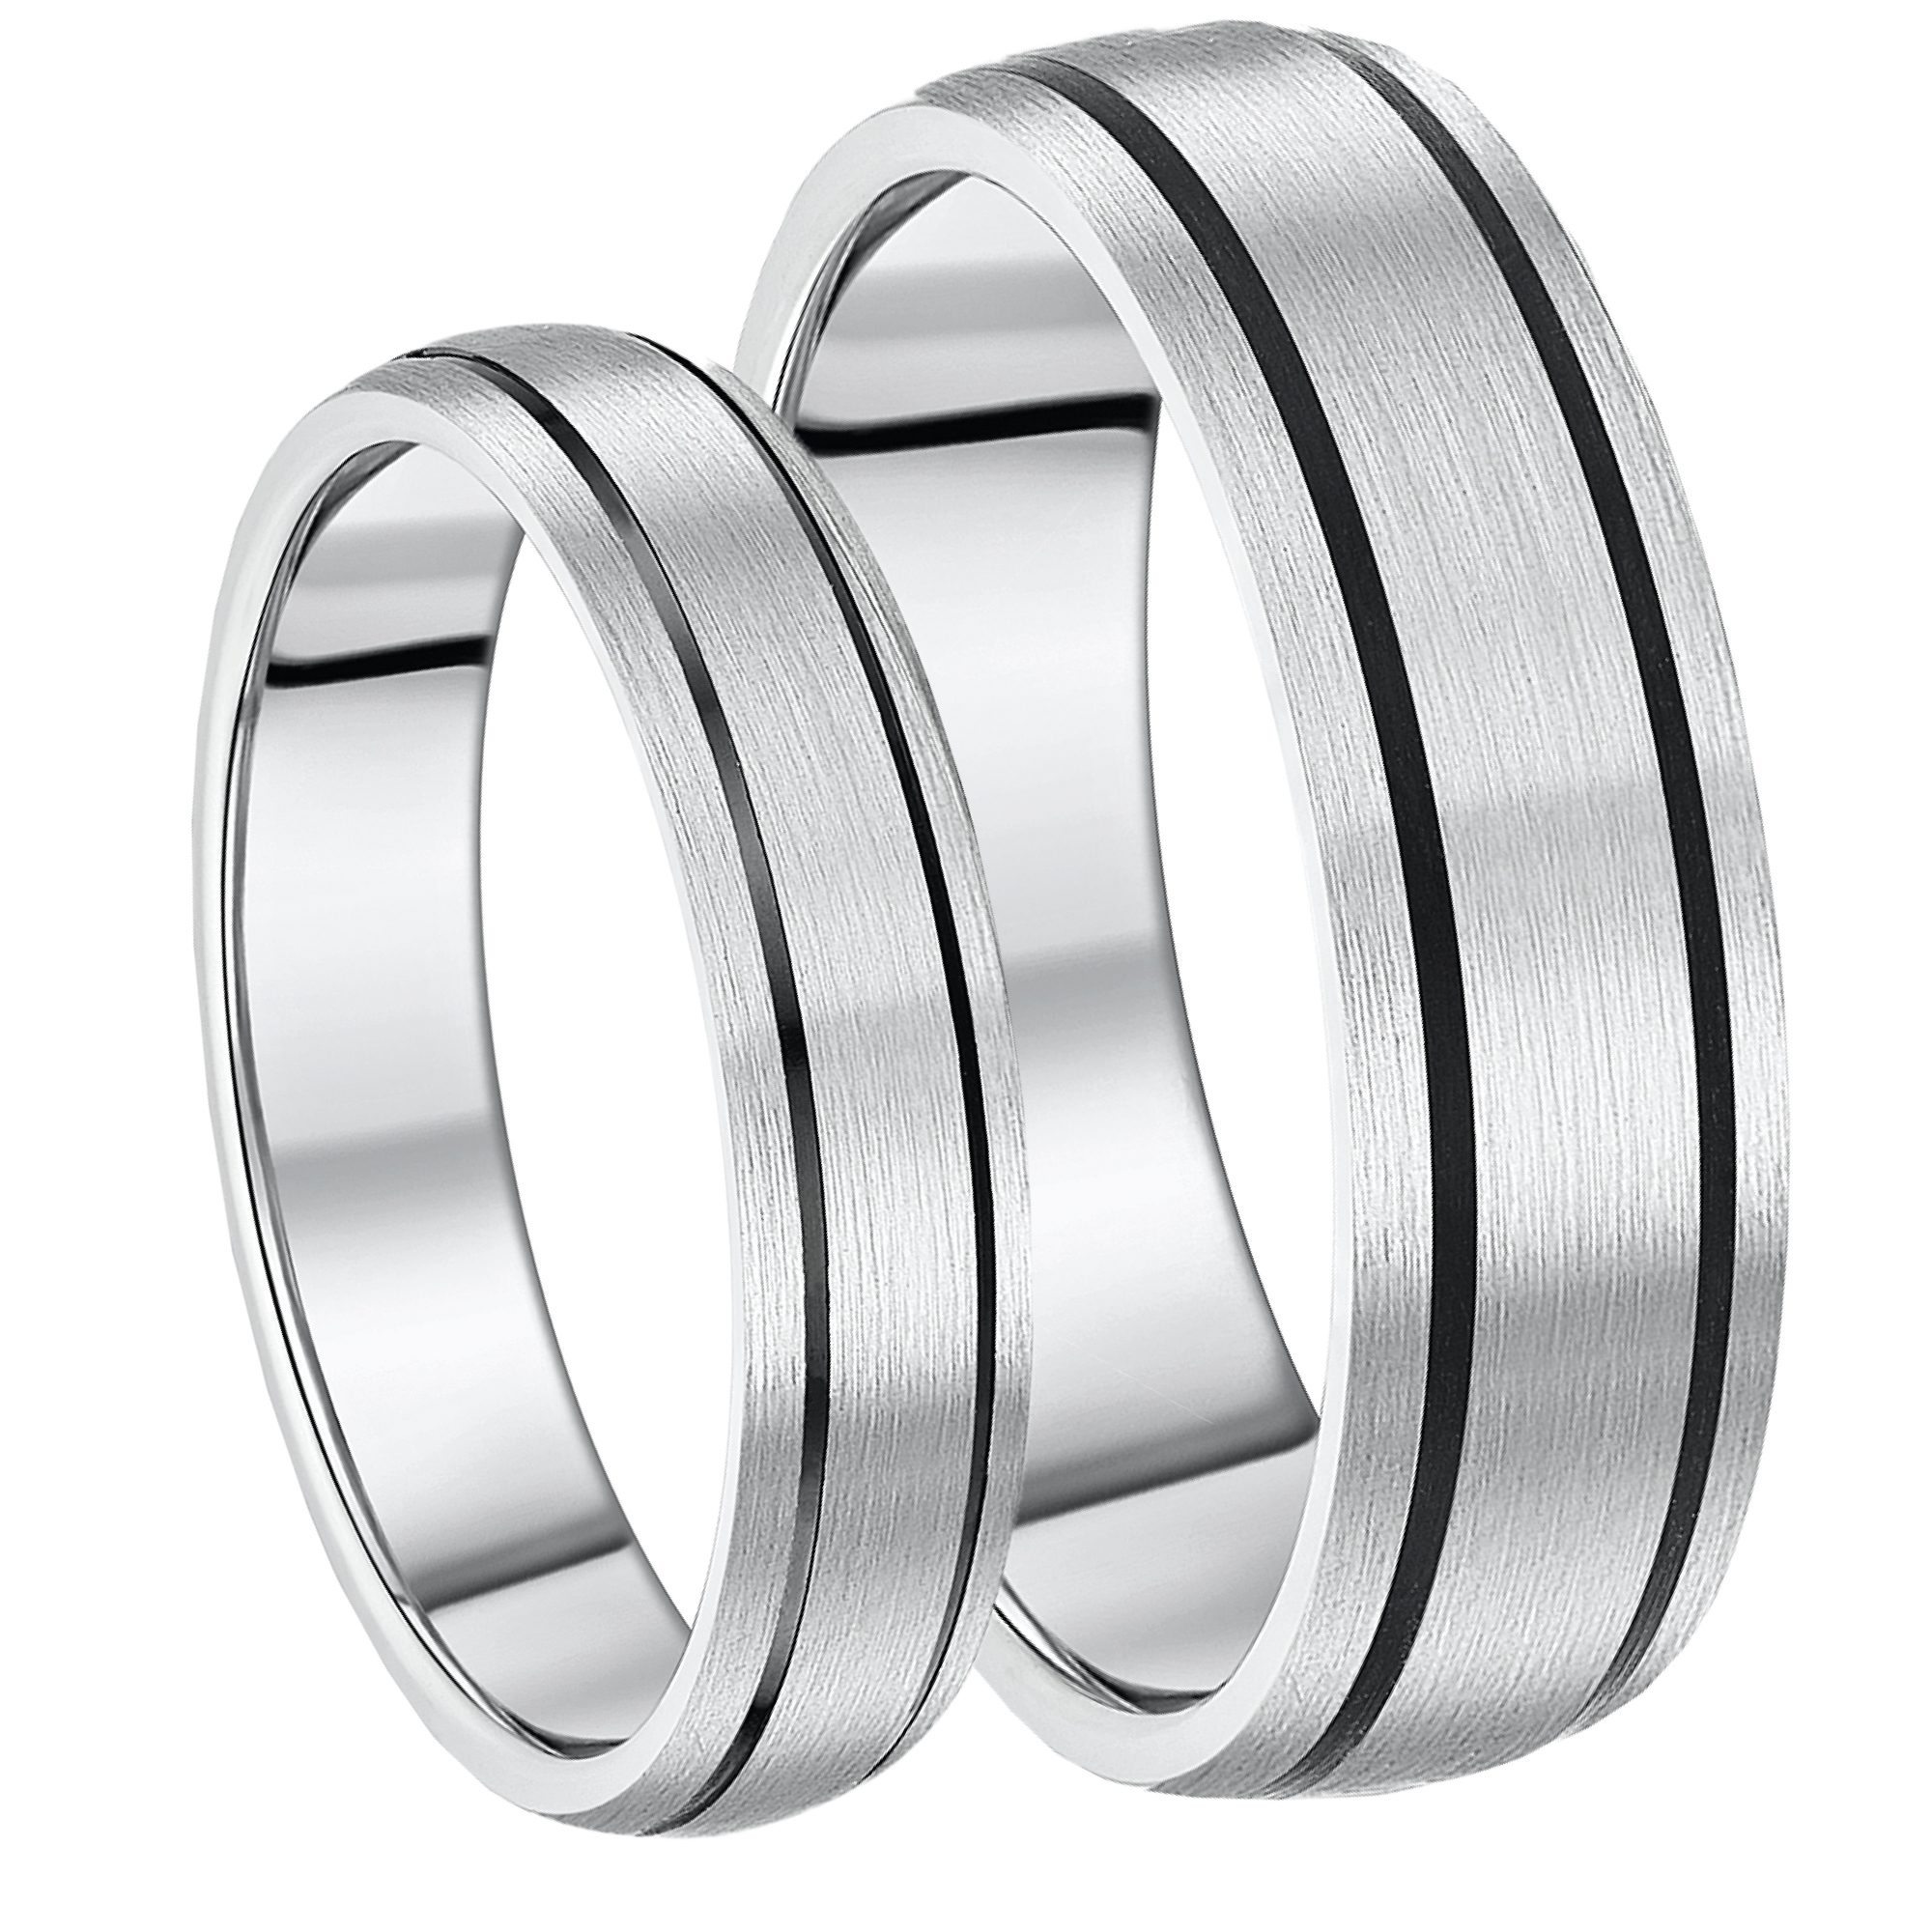 5&7mm Titanium Black Enamelled Wedding Rings